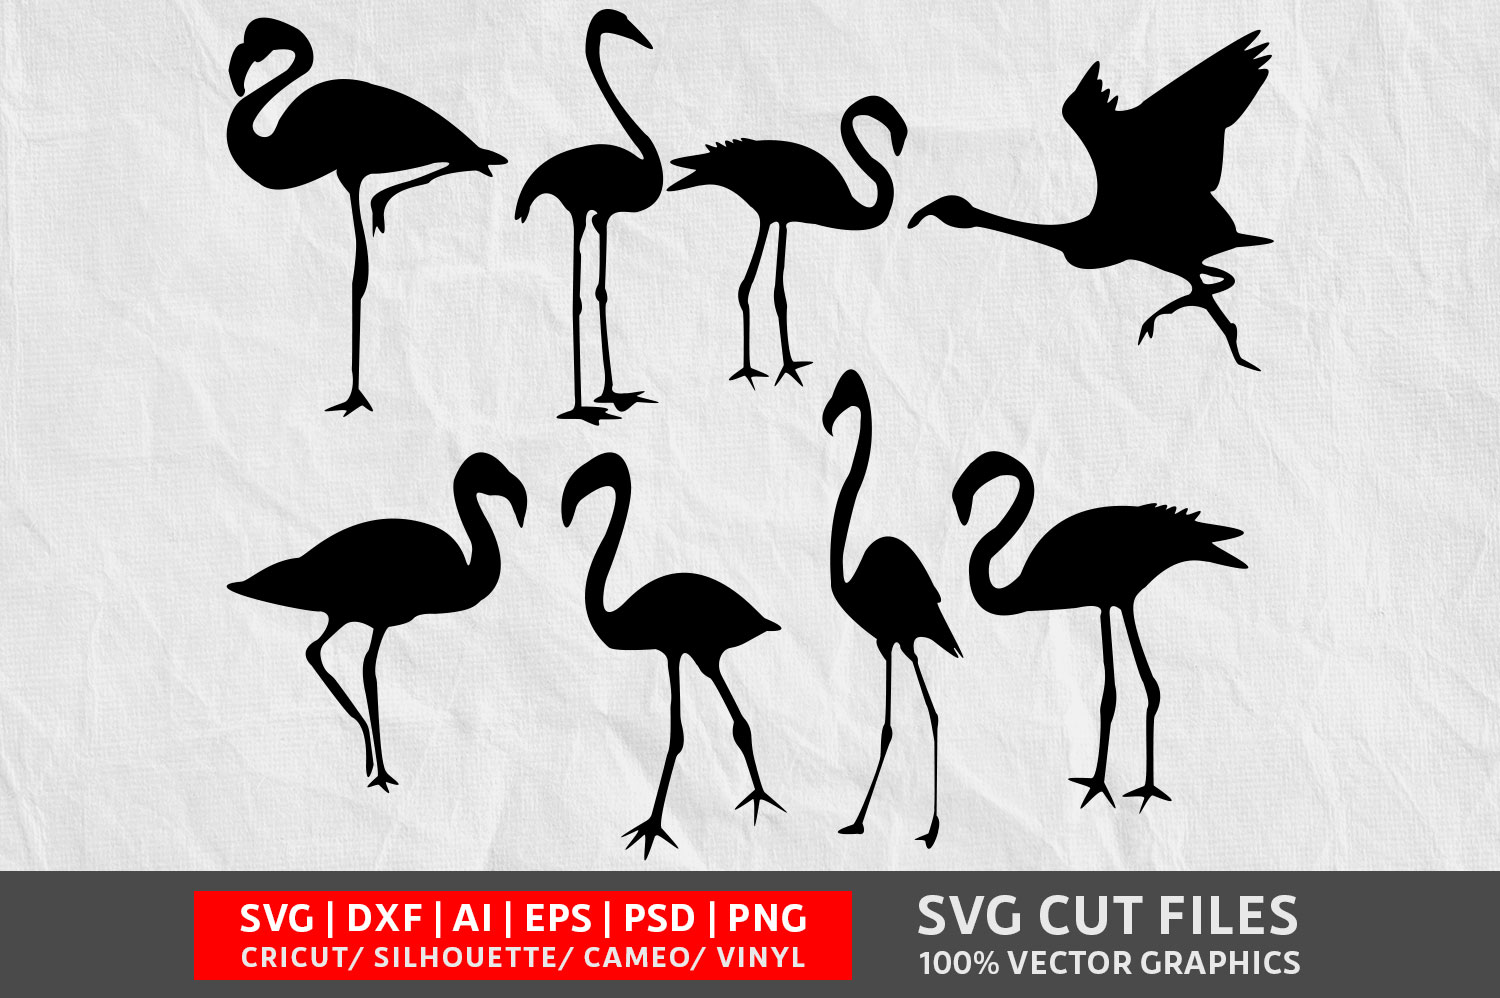 Download Free Flamingo Graphic By Design Palace Creative Fabrica for Cricut Explore, Silhouette and other cutting machines.